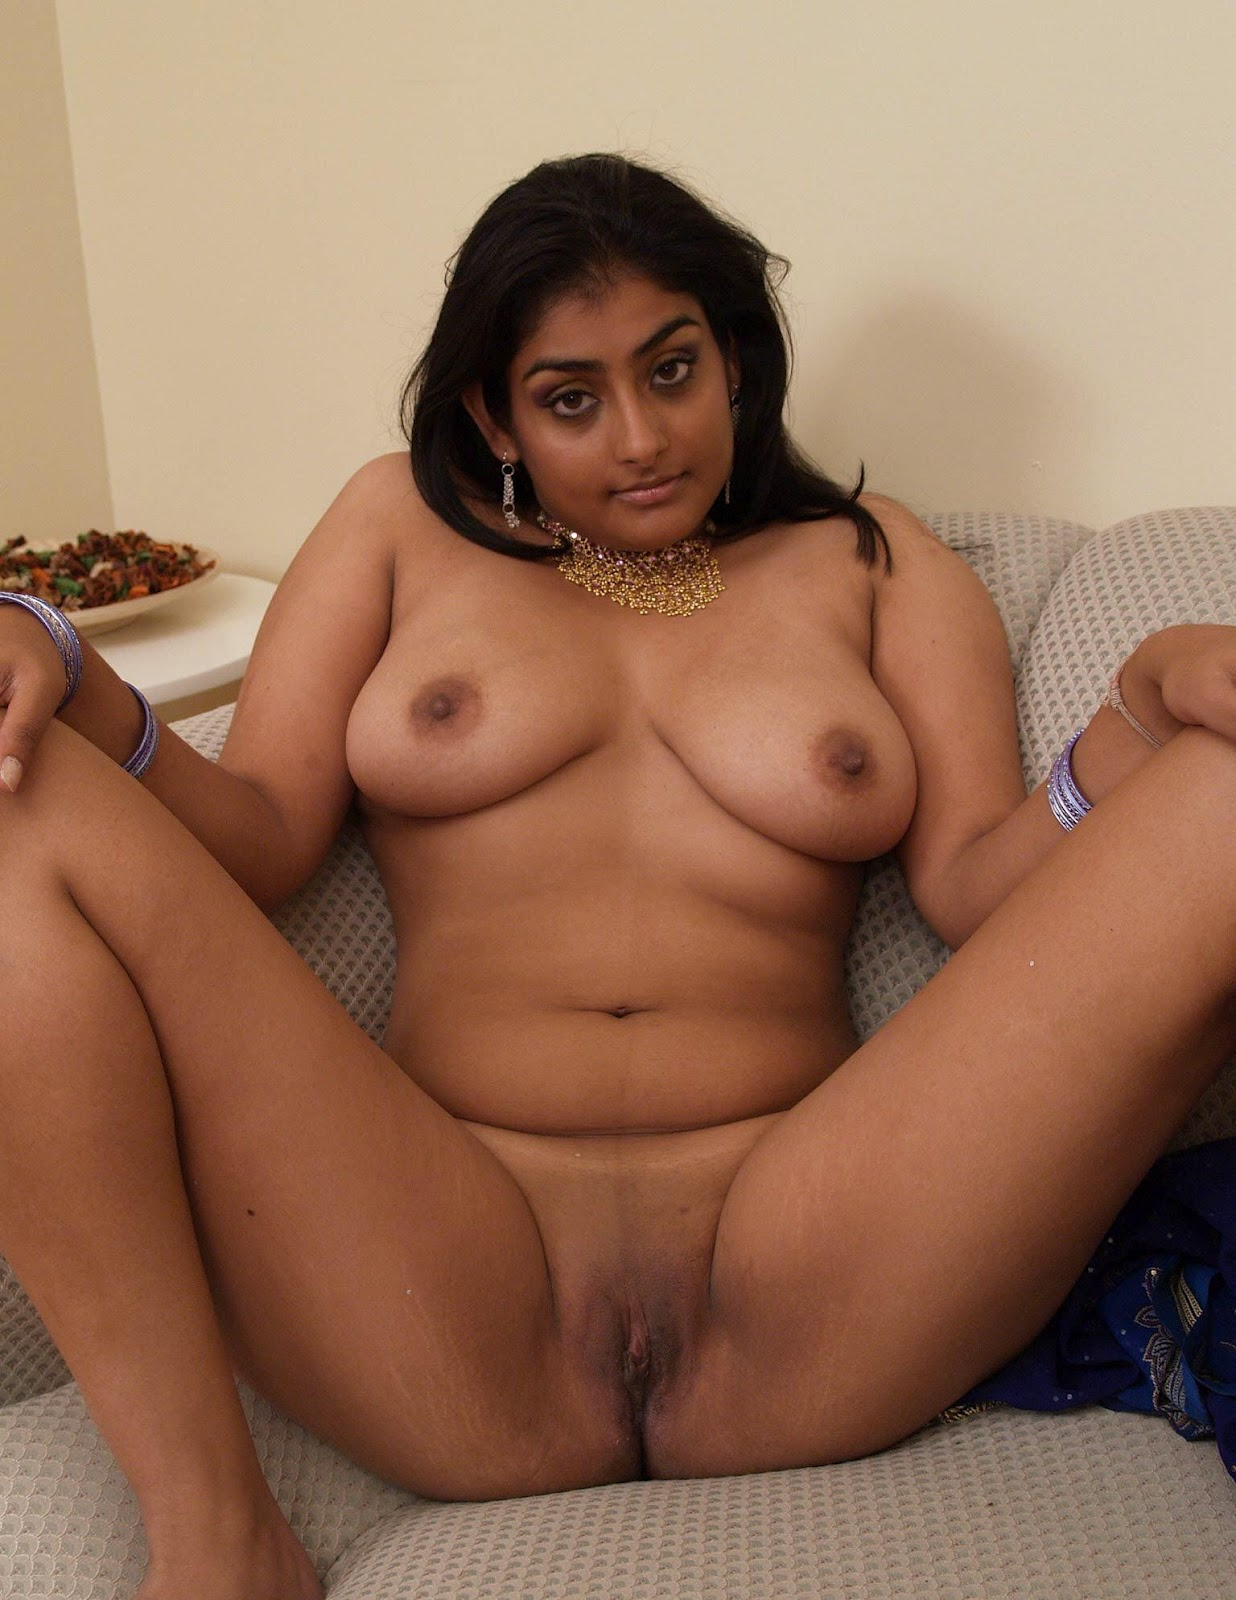 Naked indian women nude